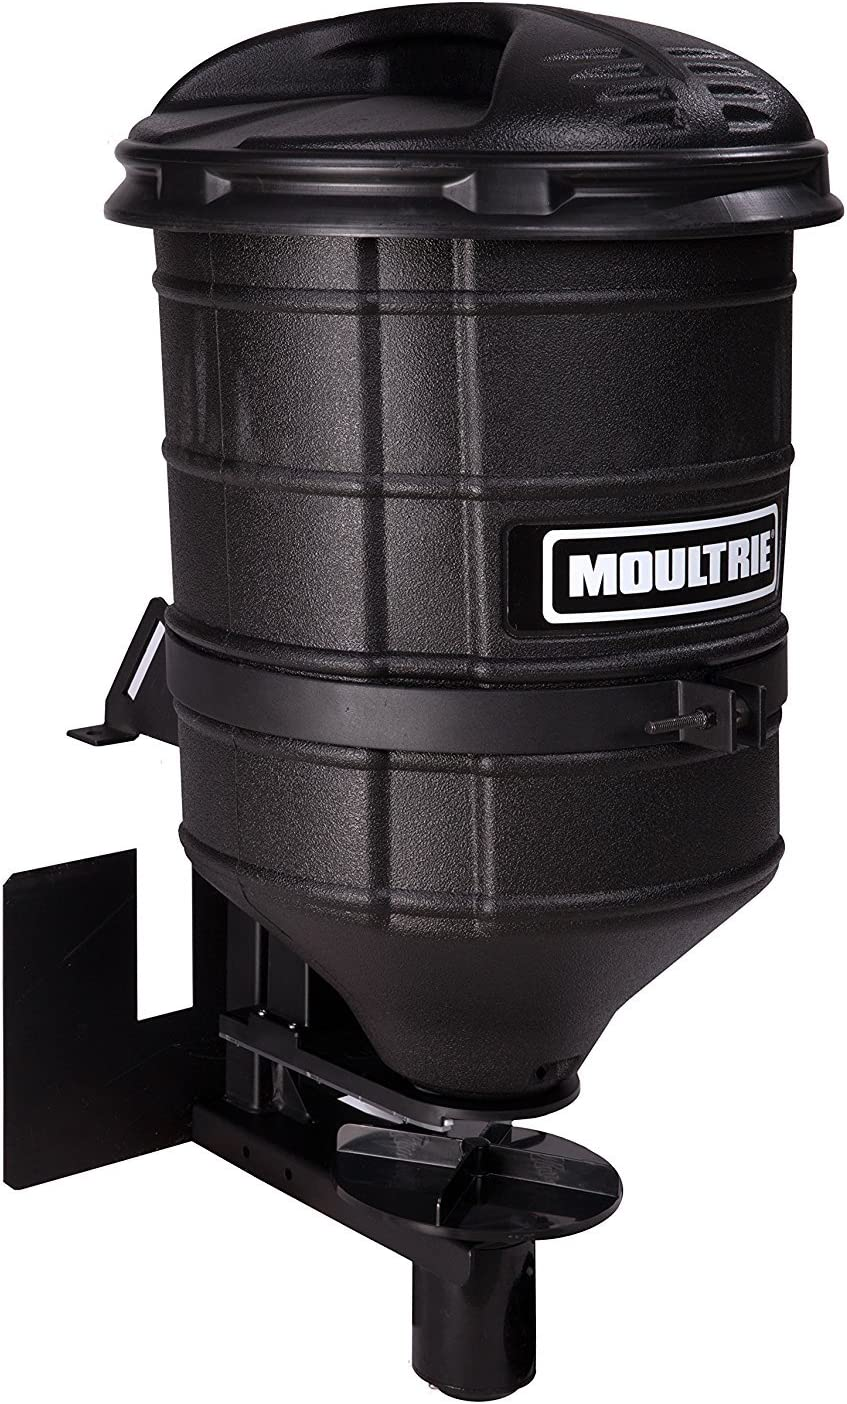 Moultrie ATV Food Plot Spreader – Electronic Feed Gate